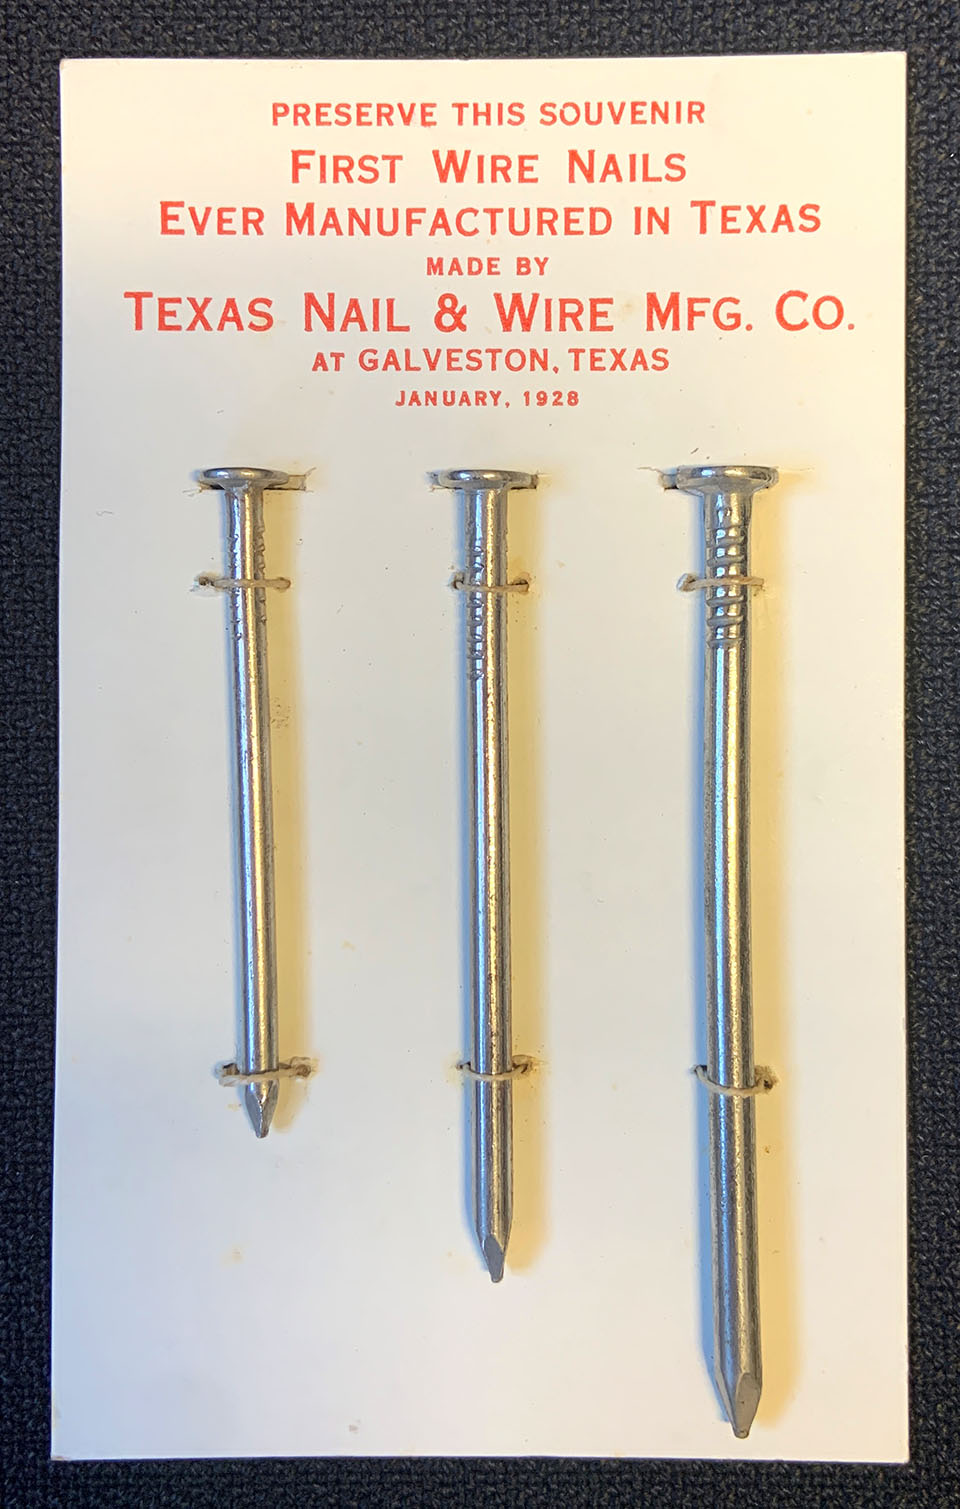 First Wire Nails Manufactured in Texas